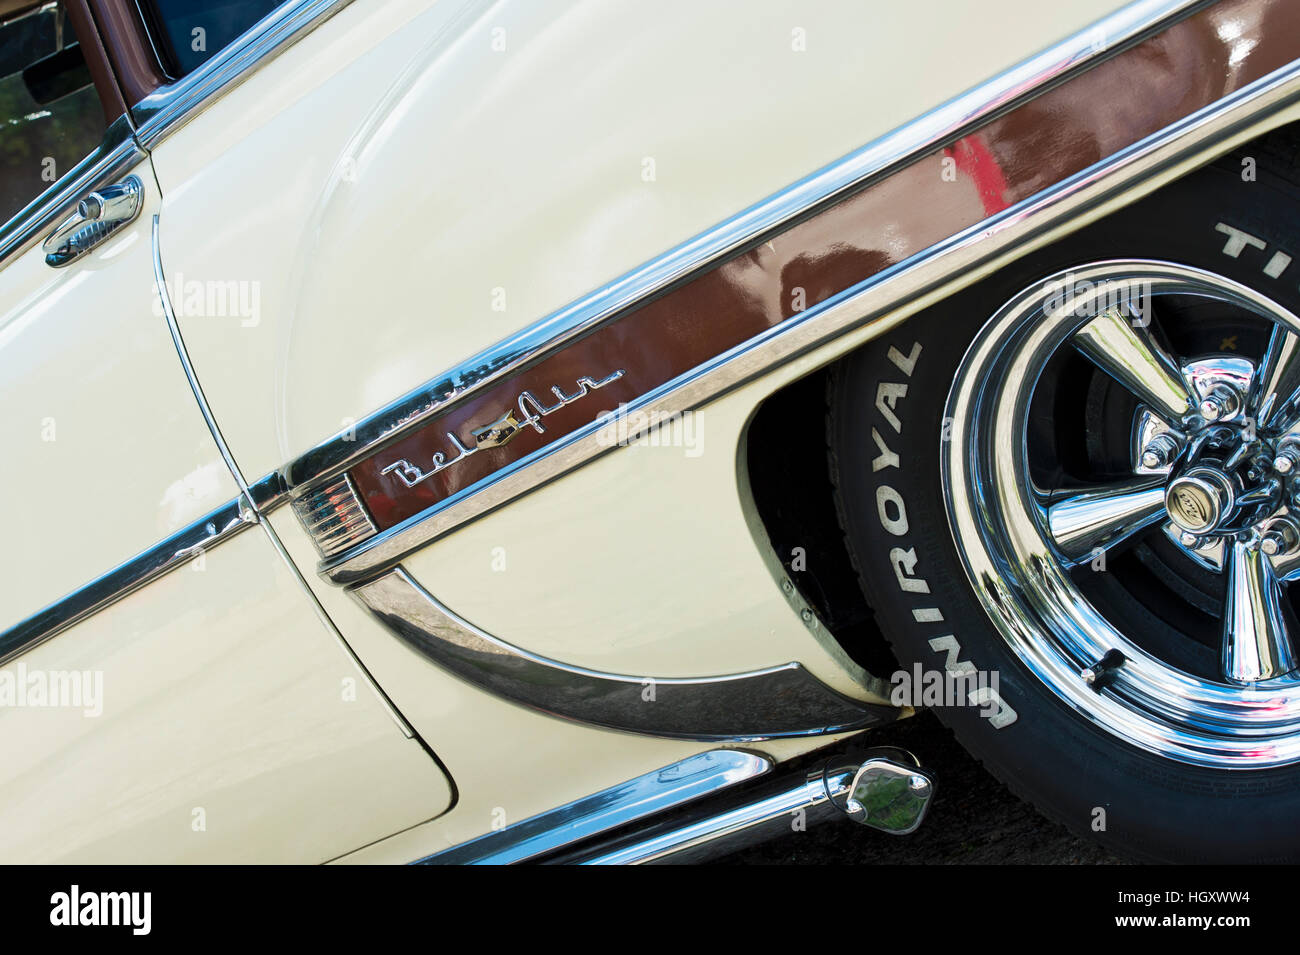 Chevy Custom Stock Photos Images Alamy 1978 Chevrolet Bel Air 1953 Abstract Classic American Car Image